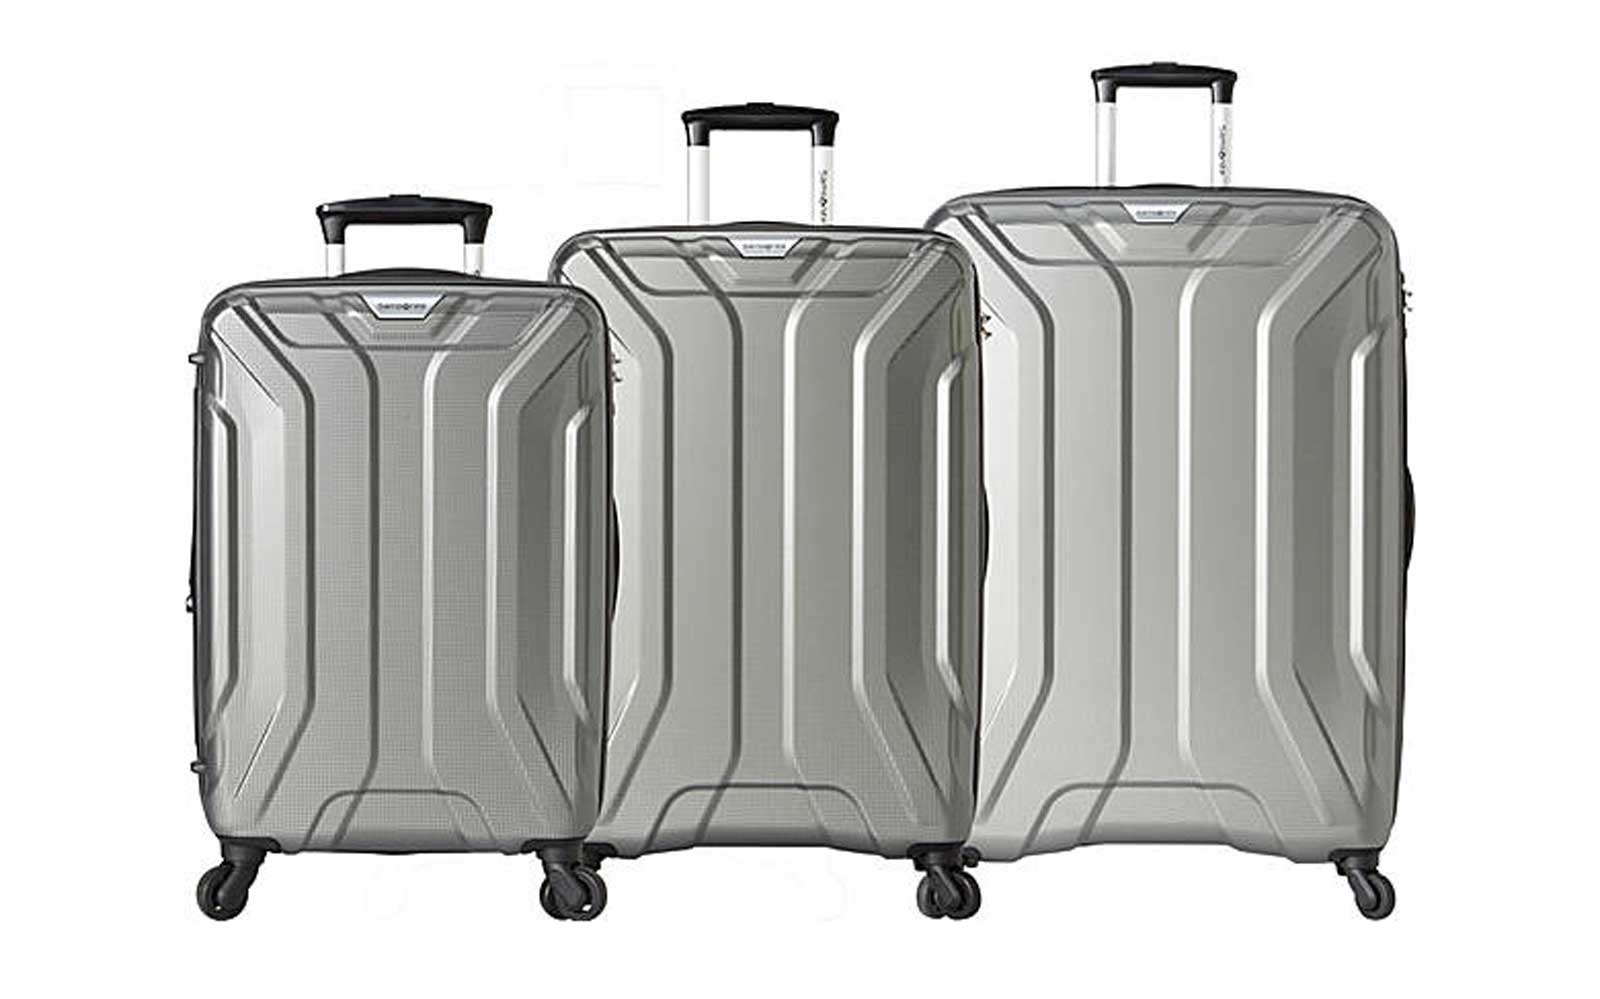 Samsonite Luggage Set